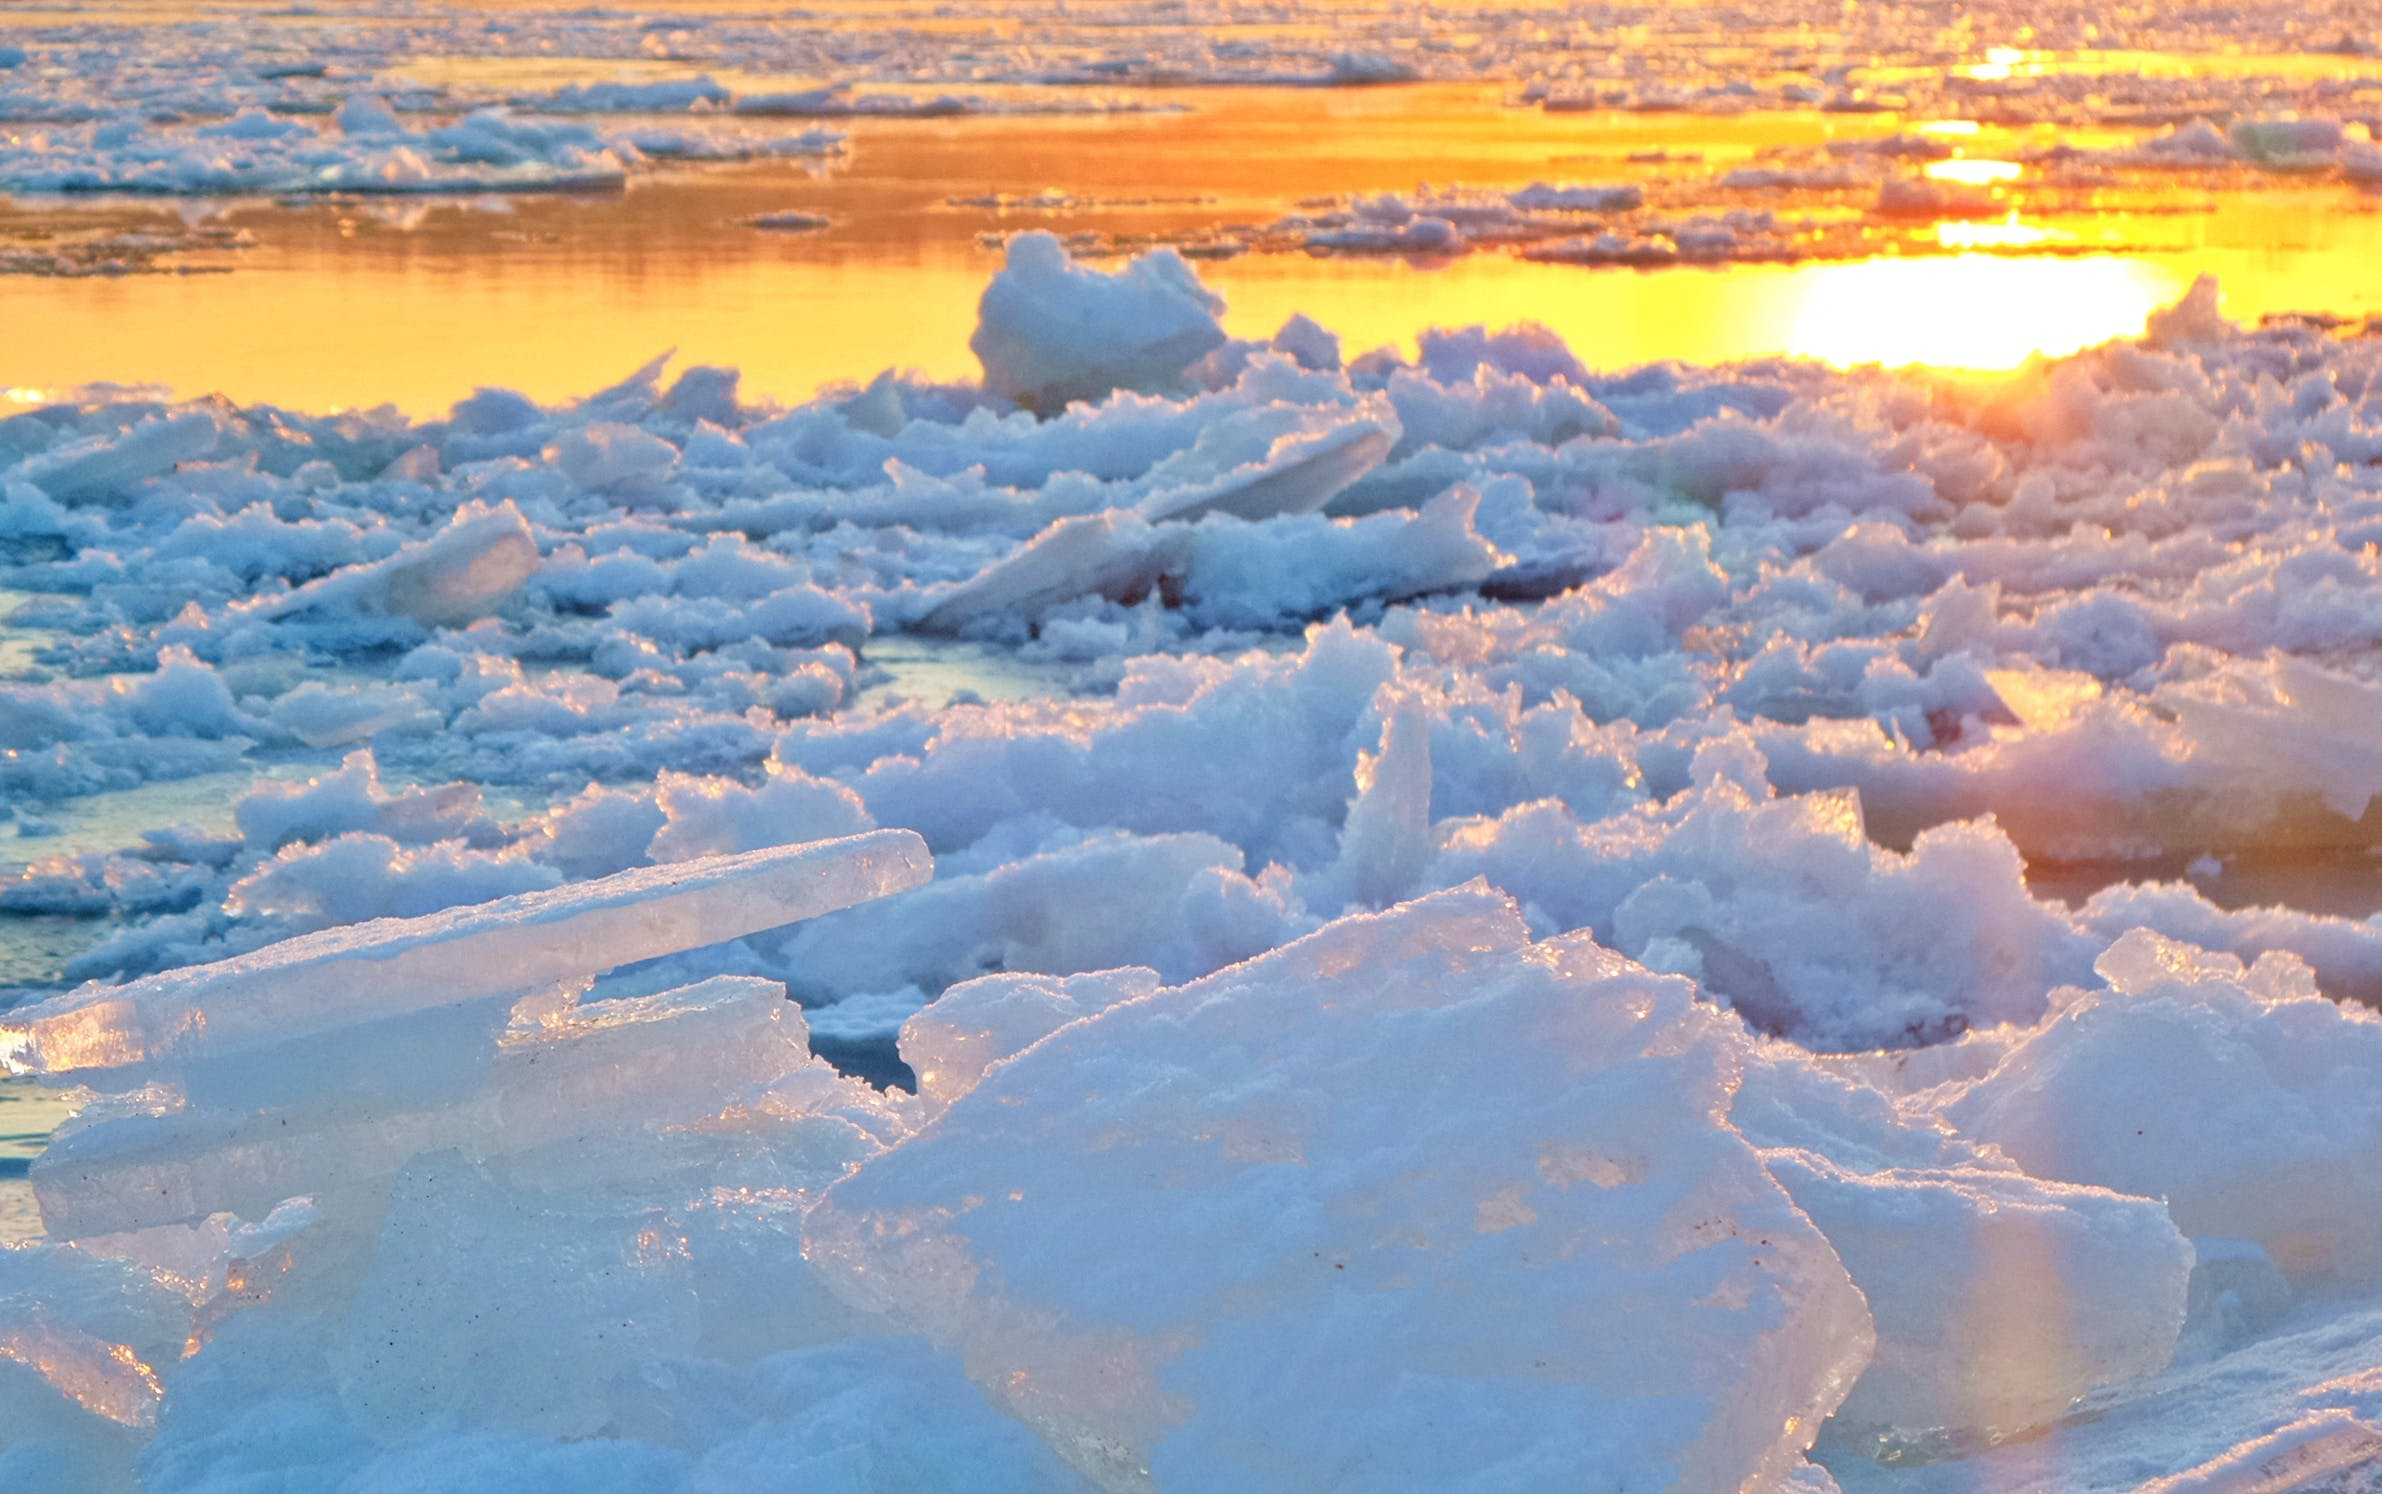 View of Frozen Lake during Sunset